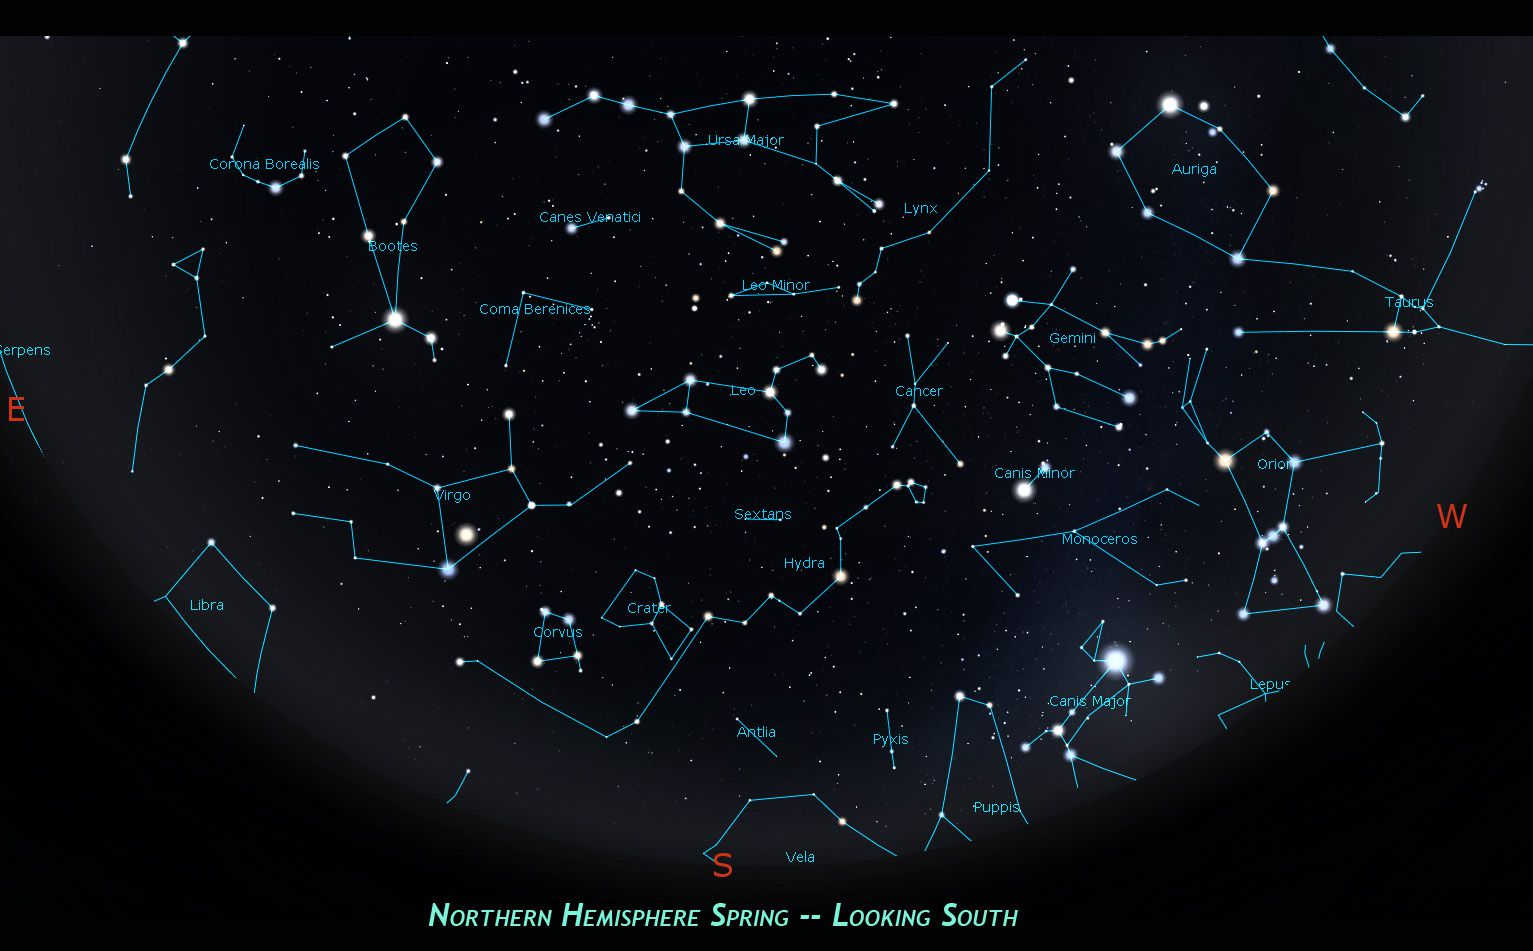 Northern Hemisphere spring skies and constellations, view to the south.